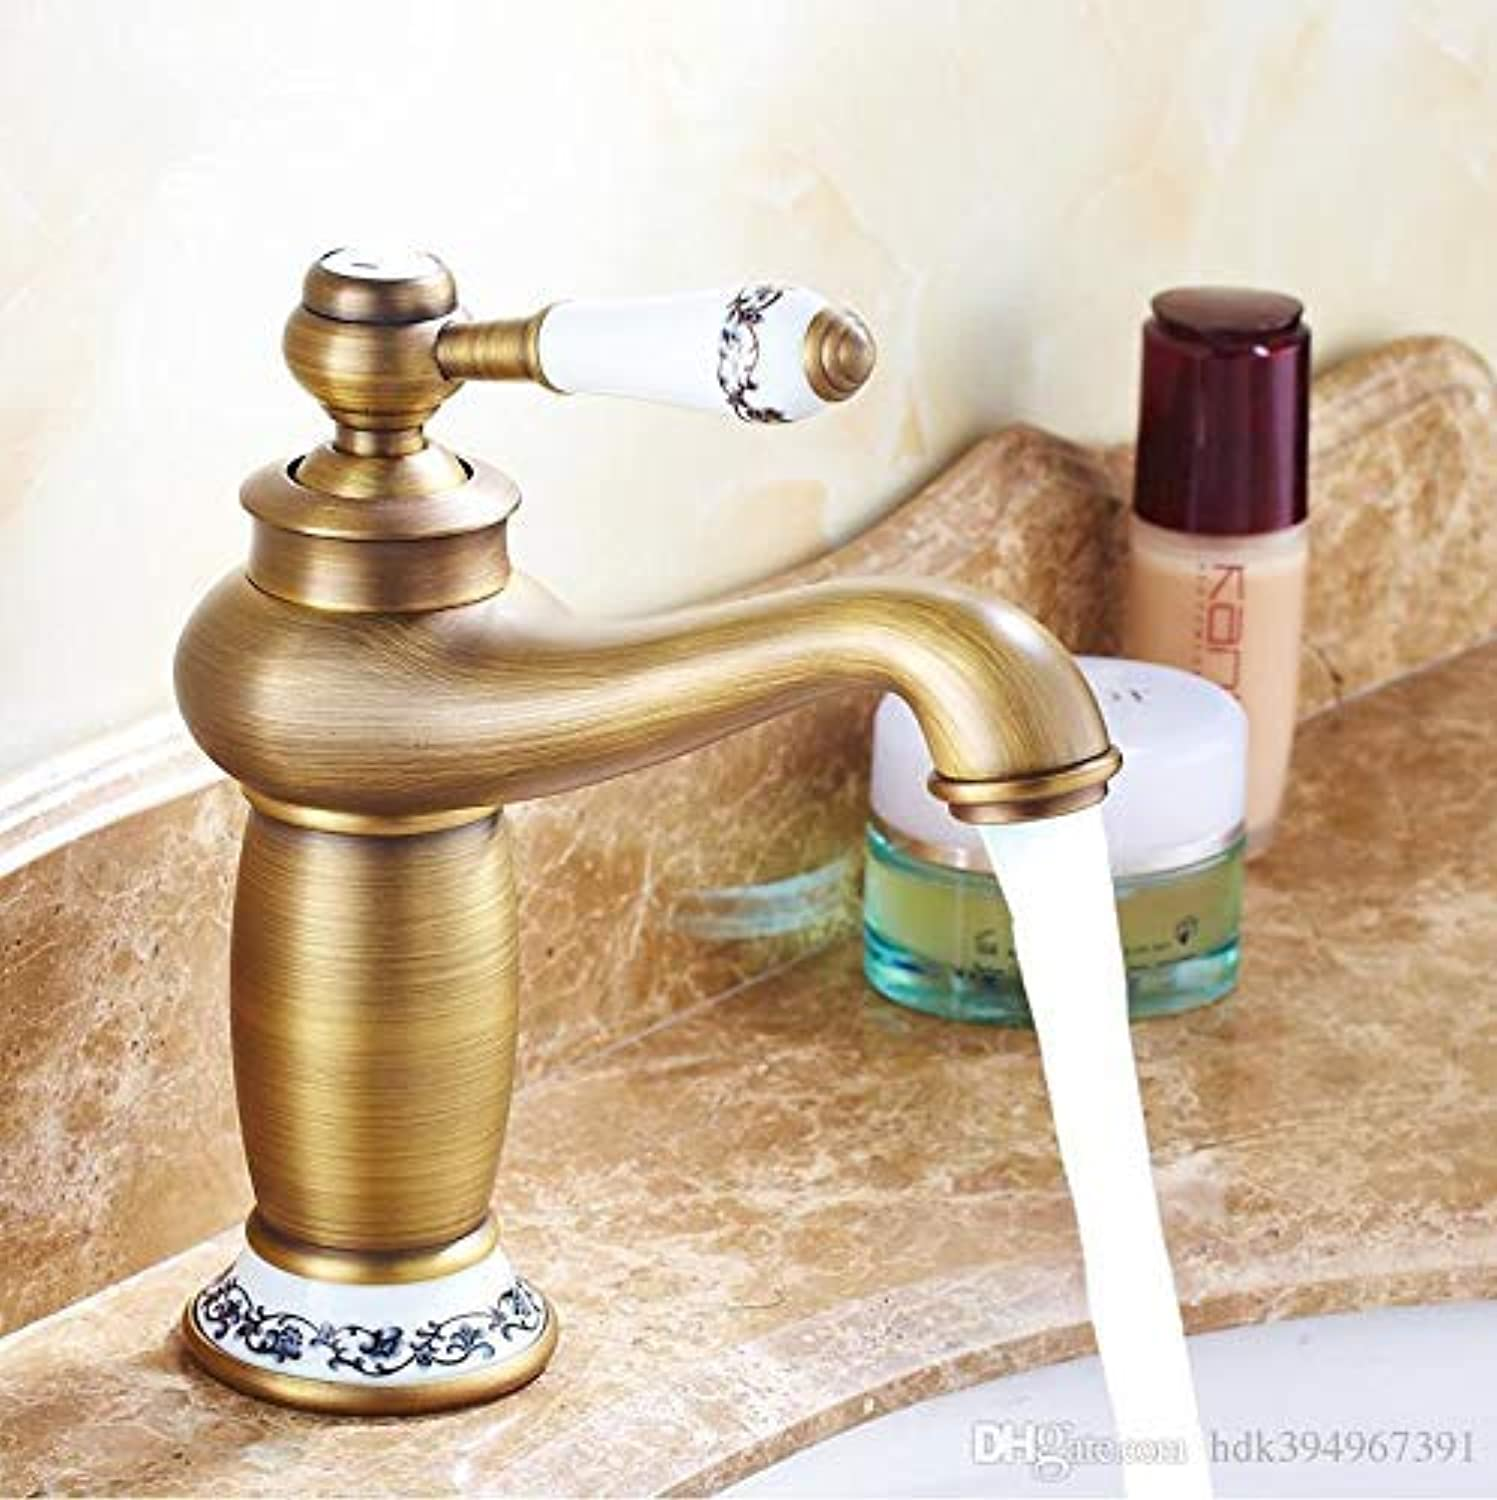 Oudan New Arrivel Contemporary Short Bathroom Faucet Antique Bronze Finish Brass Basin Sink Faucet Single Handle Faucet, A (color   B, Size   -)